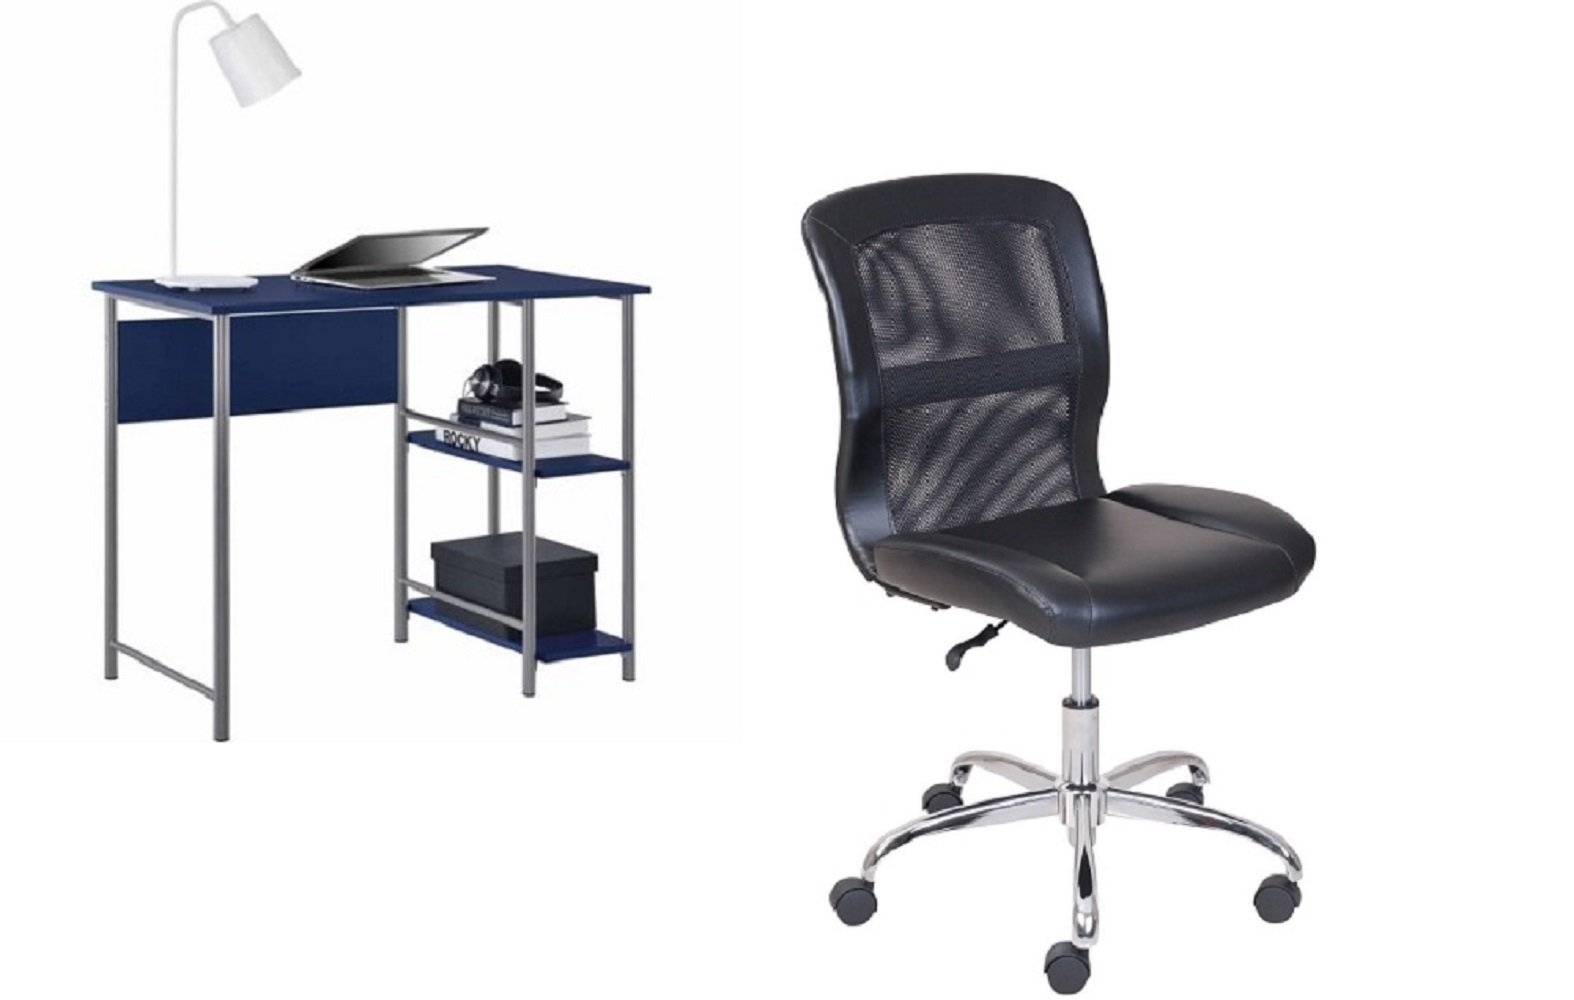 Student chair and desk office set